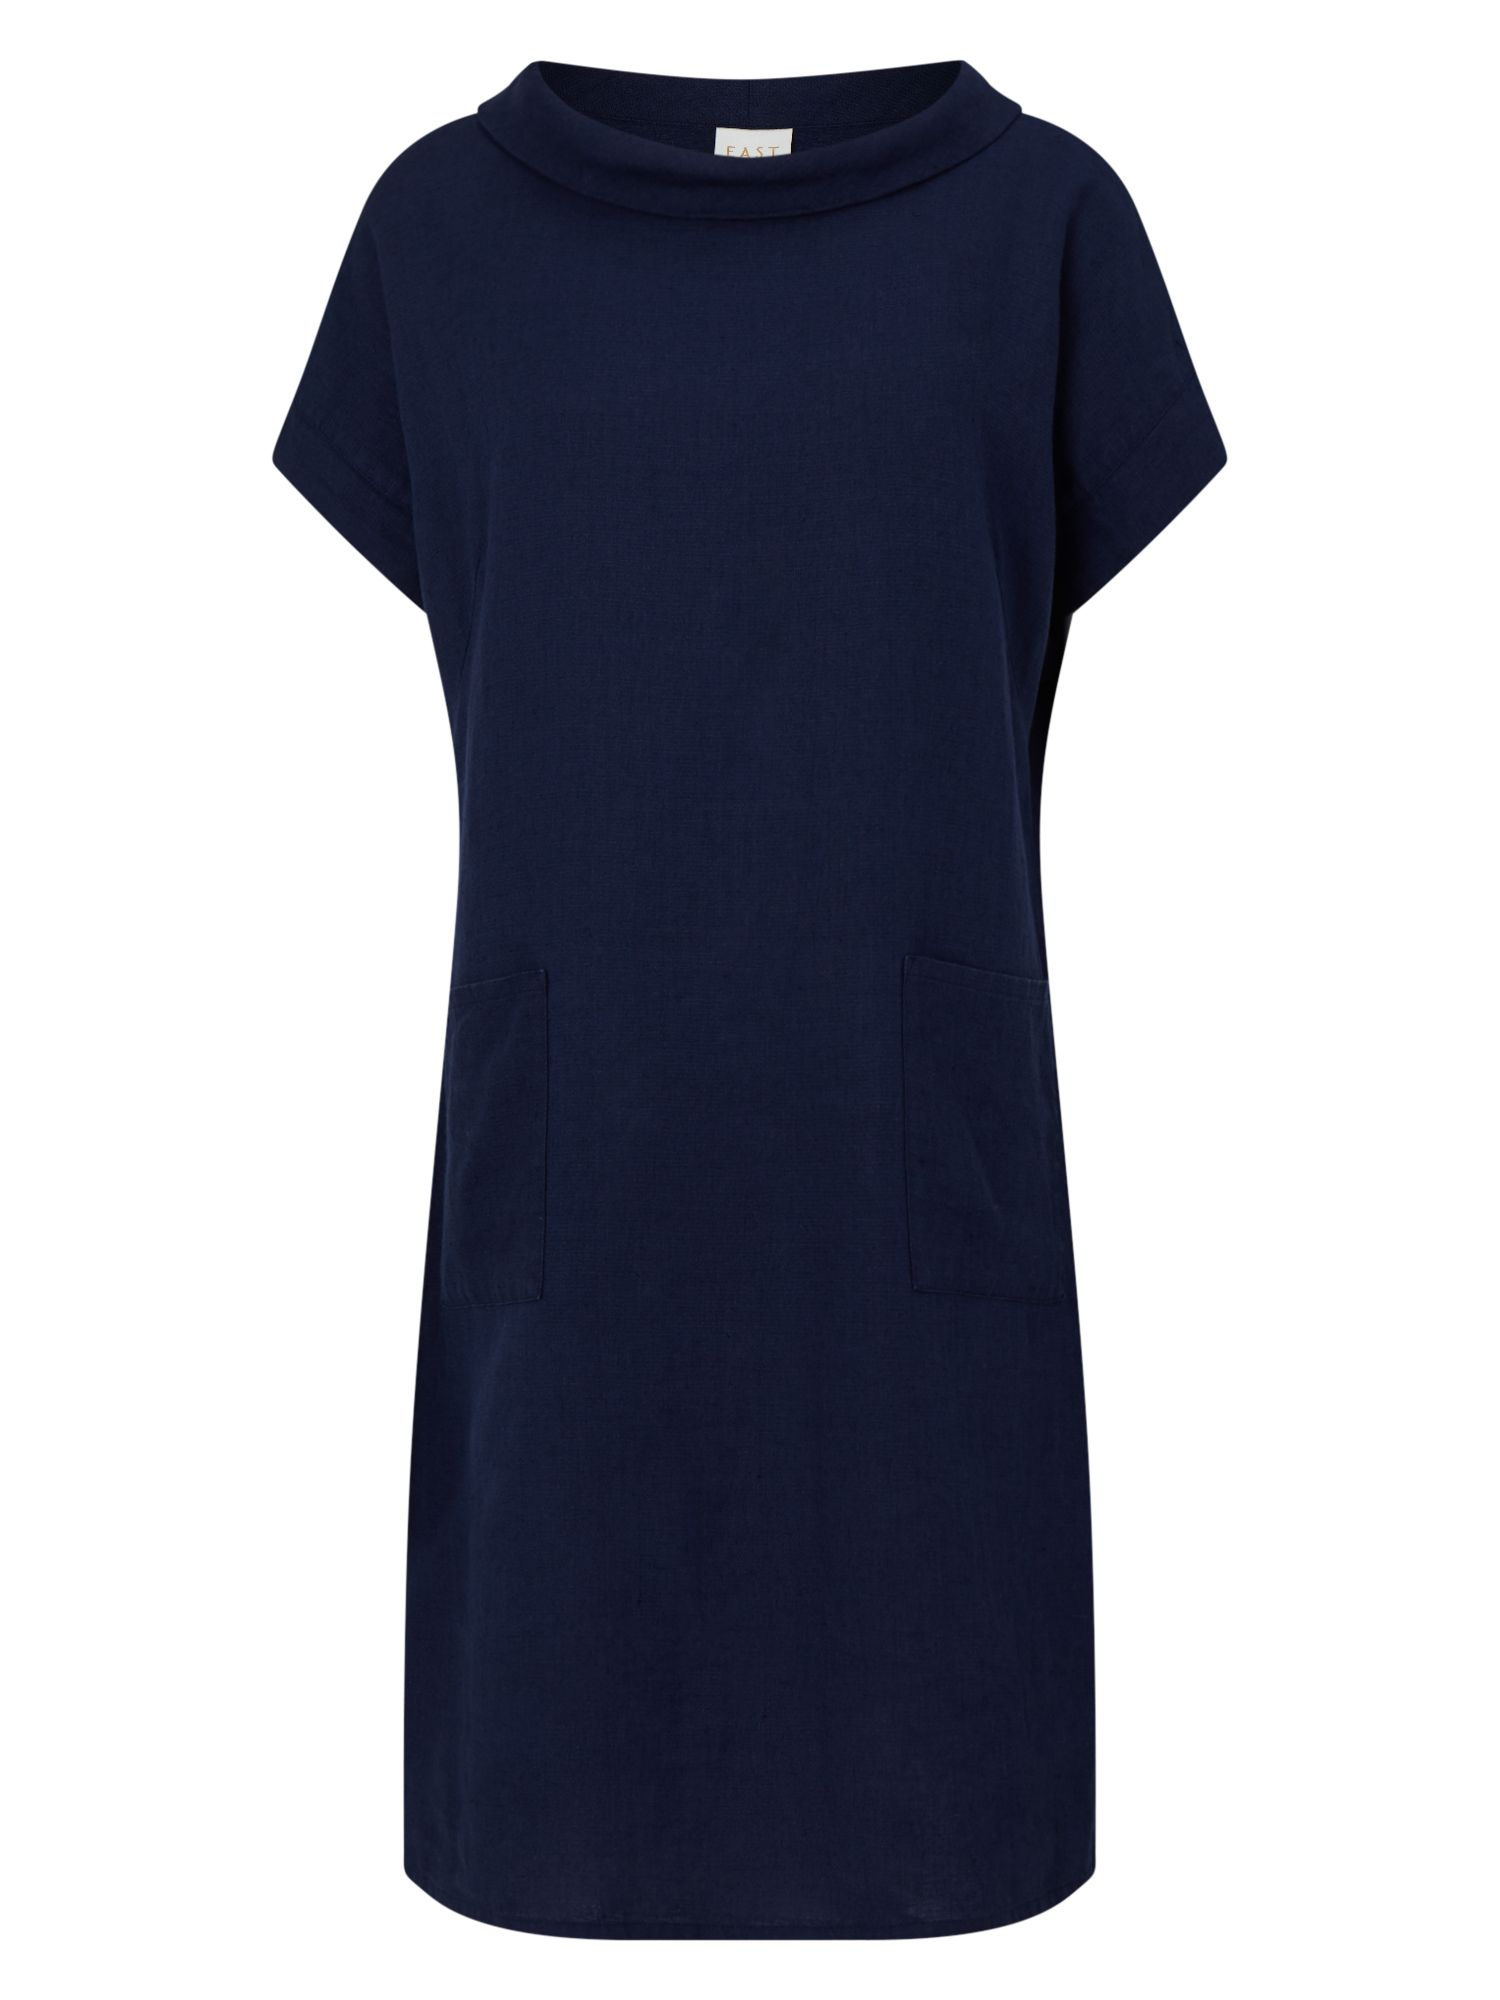 East Bardot Neck Dress, Blue